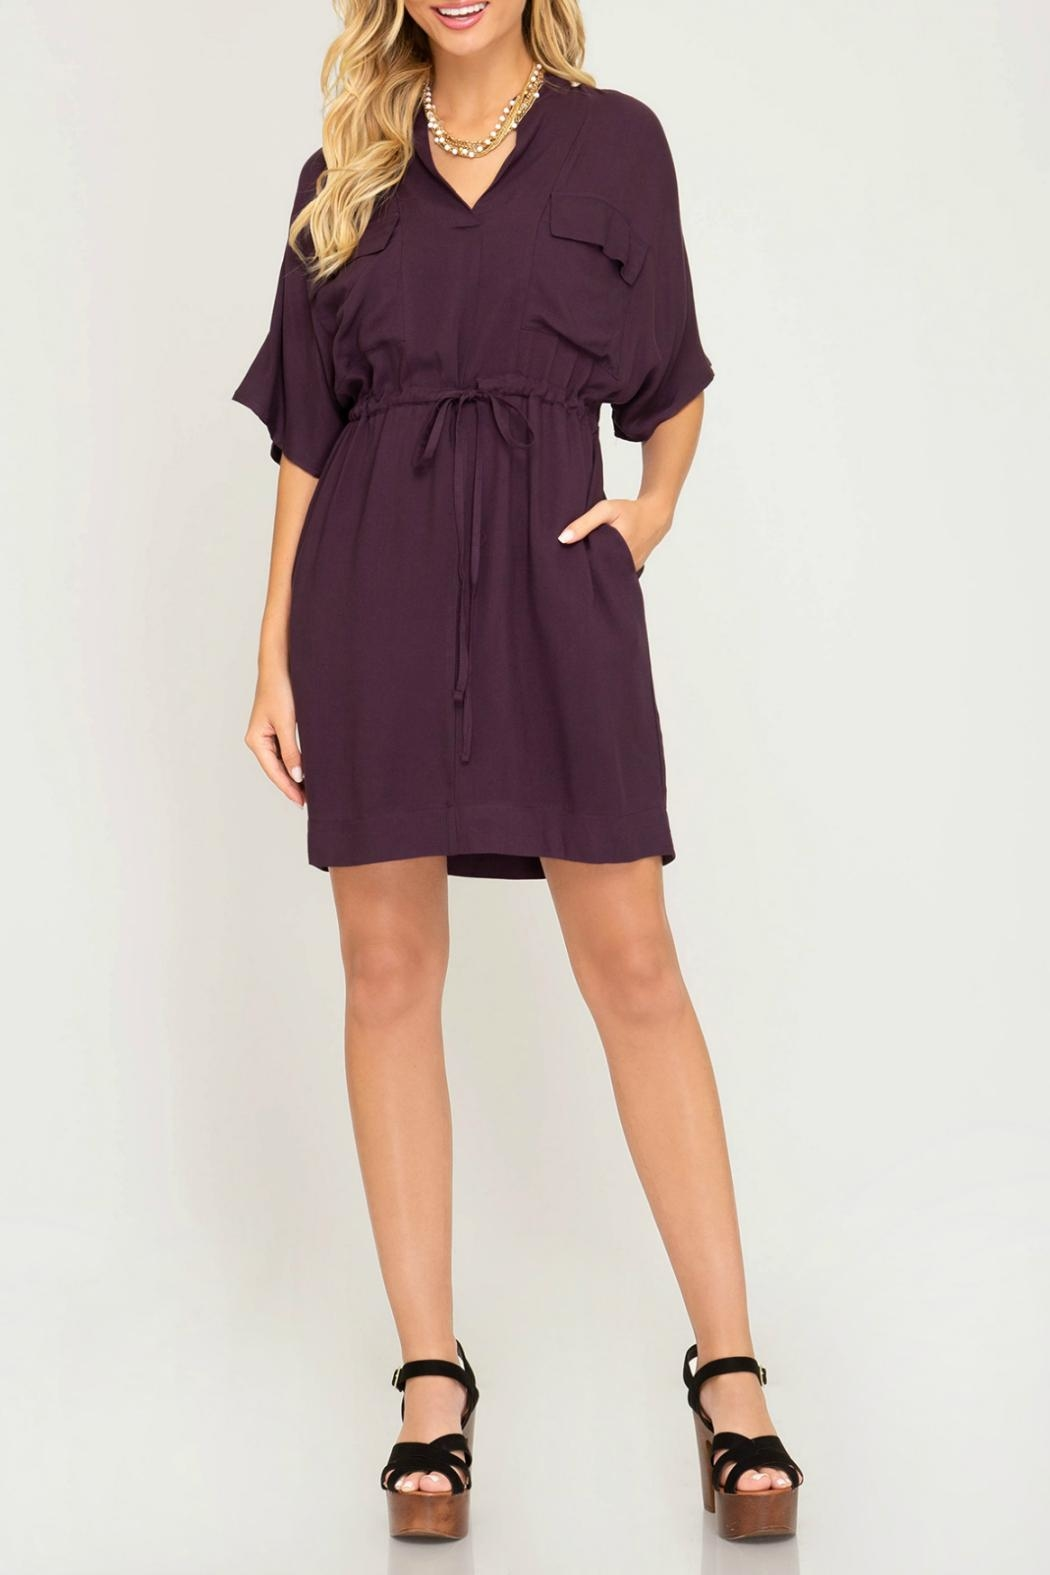 She + Sky Waist Tie Shirtdress - Main Image